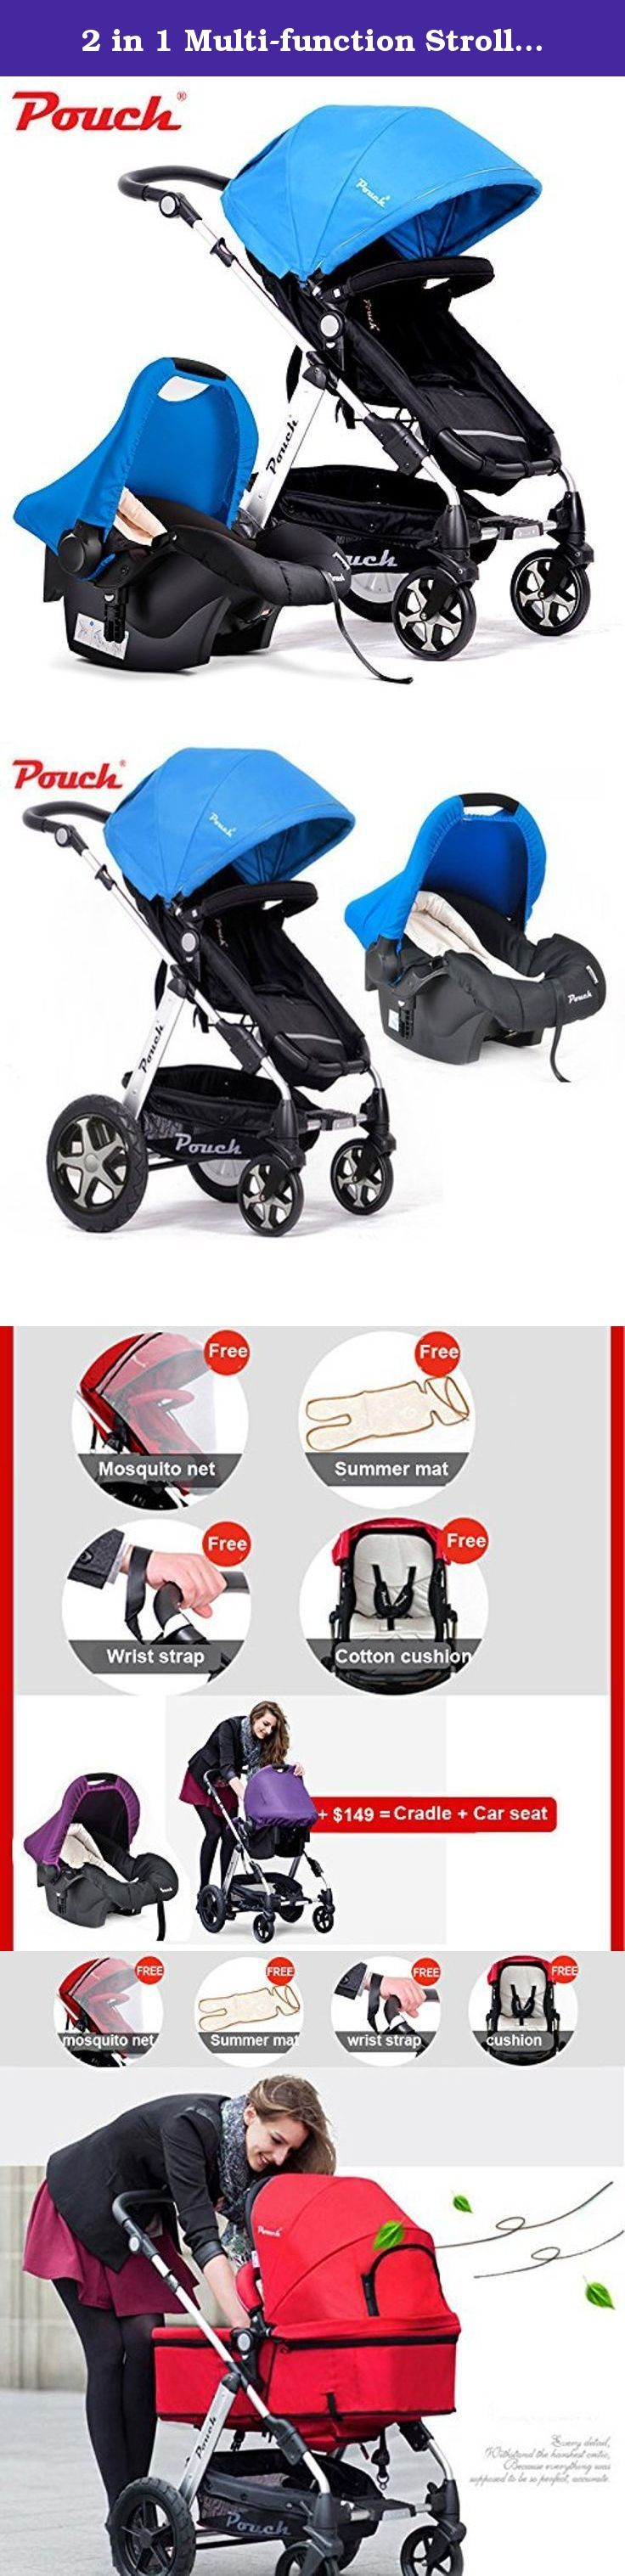 2 in 1 Multi-function Stroller, Stroller+ Car Seat + Cradle + Basket for 0-48 Months Baby, Can Sit & Lie Down, High Landscape, Folding, Bidirectional, 4- Wheels Pushchair (blue). 1. Baby stroller is high landscape: ground clearance 52cm, which will let your baby have a broad view, and also can protect your baby from automobile exhaust; 2. Can be used as chair: seat height is equal to the dining table, which is convenient for baby to eat ; 3. Stroller frame is made of aluminum alloy, and…